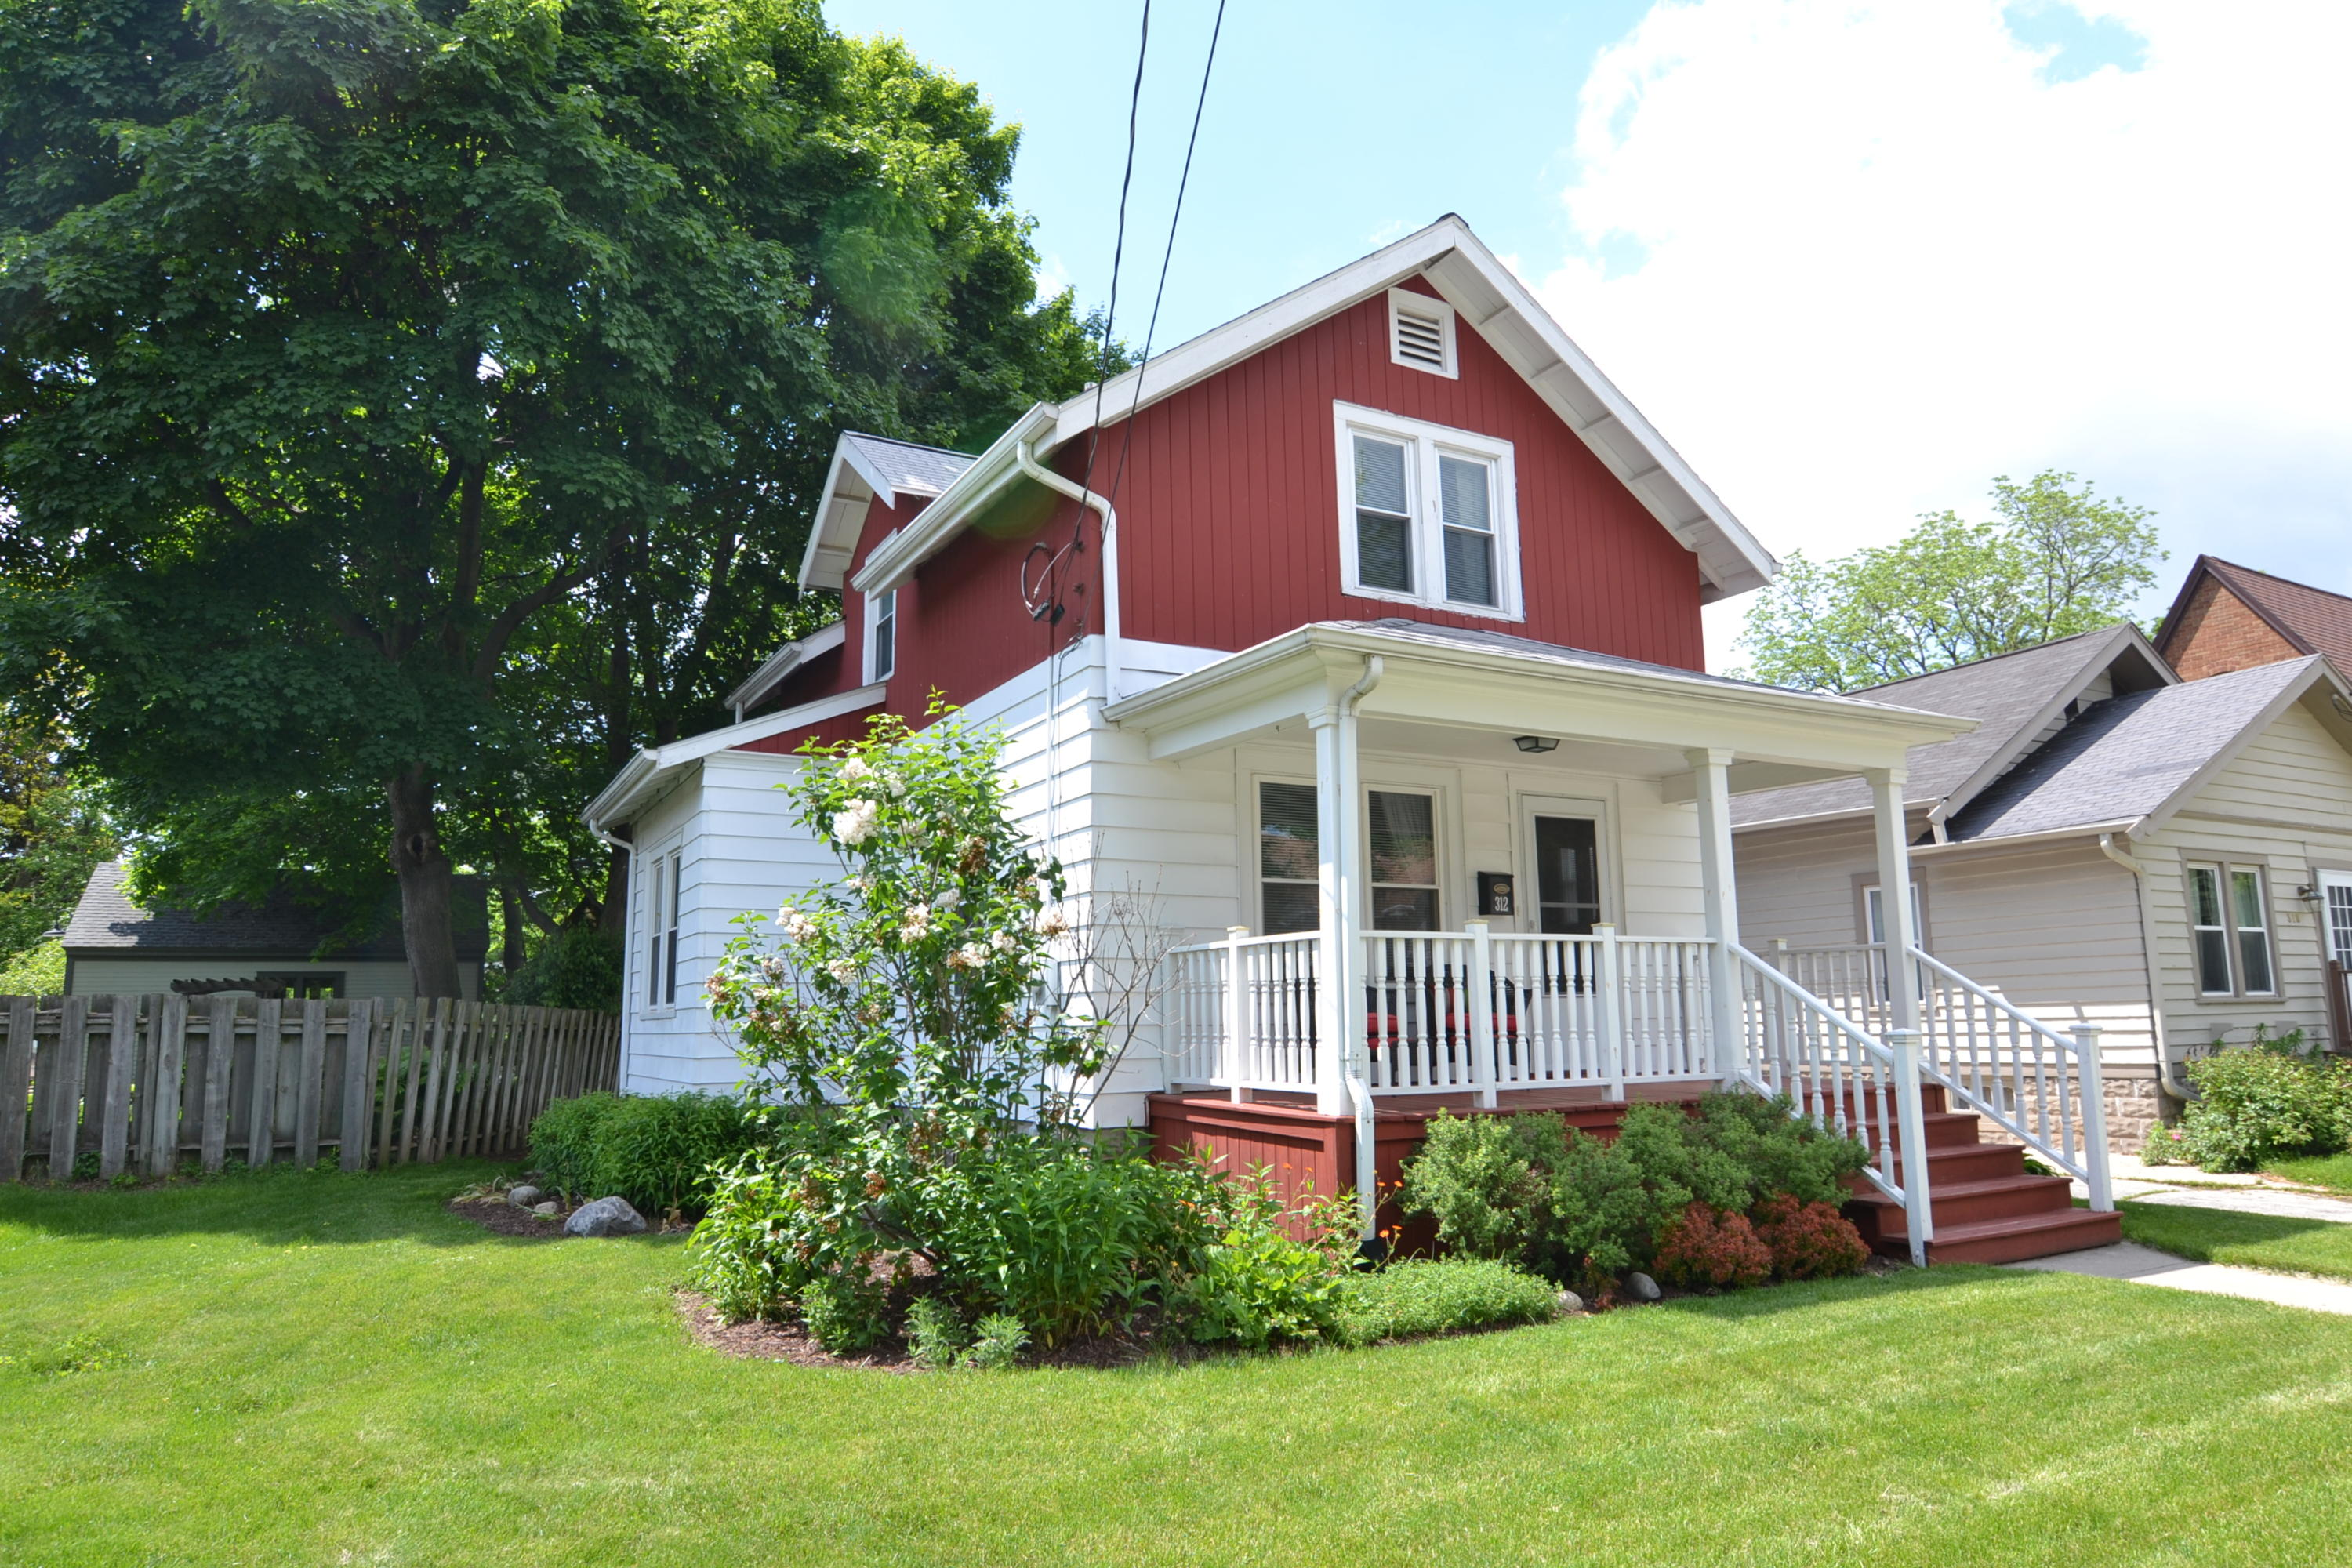 312 Greenfield Ave, Waukesha, Wisconsin 53186, 2 Bedrooms Bedrooms, 5 Rooms Rooms,1 BathroomBathrooms,Single-Family,For Sale,Greenfield Ave,1641005